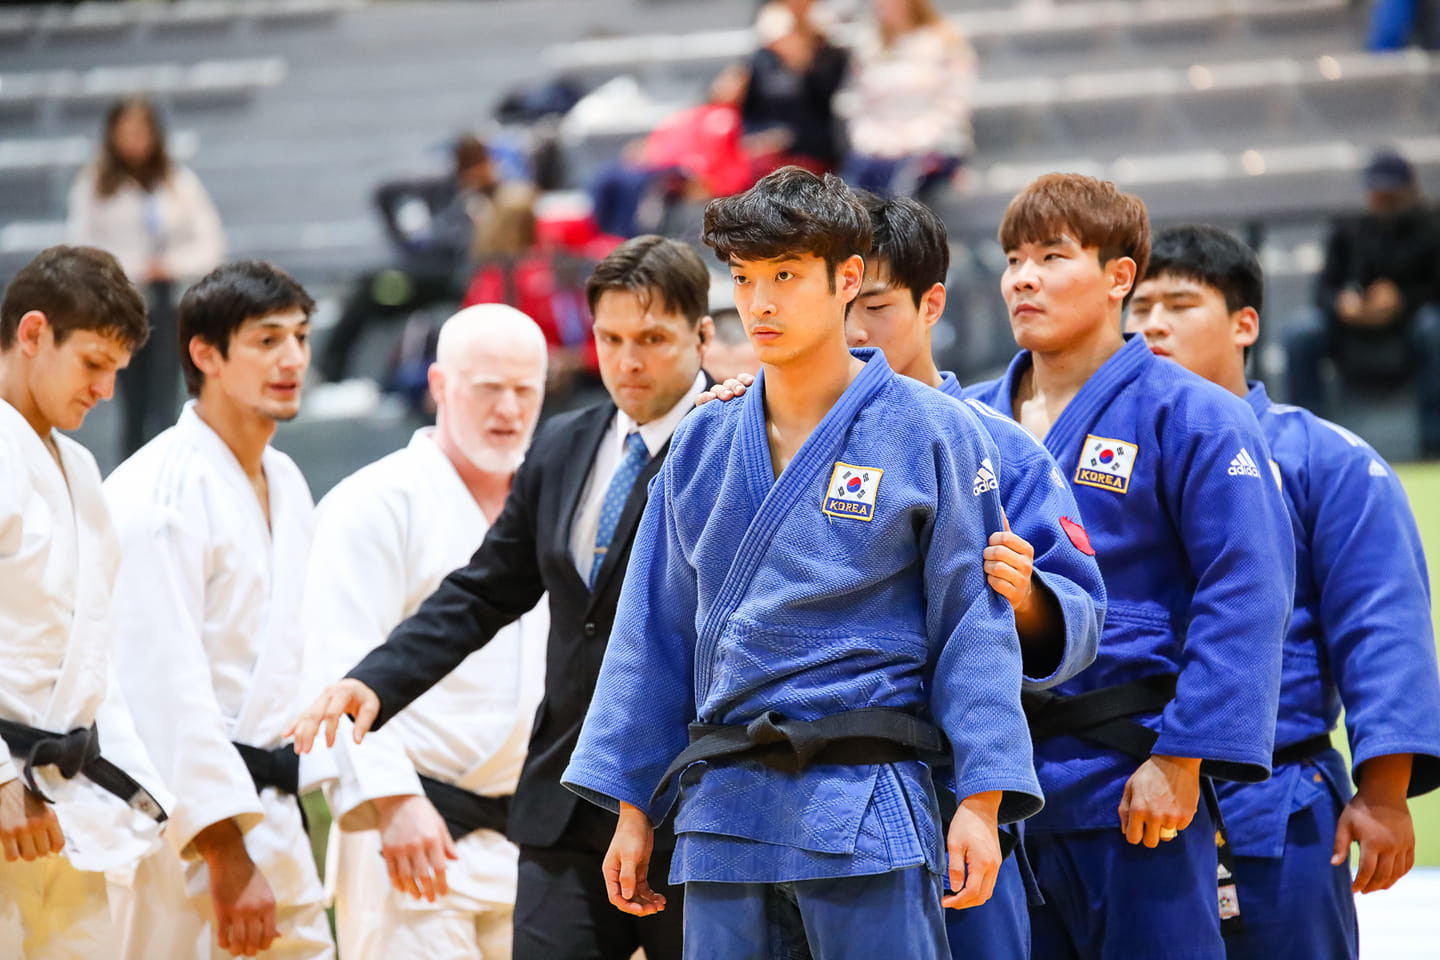 South Korea won both golds on offer today to bring the IBSA World Judo Championships to an end ©IBSA